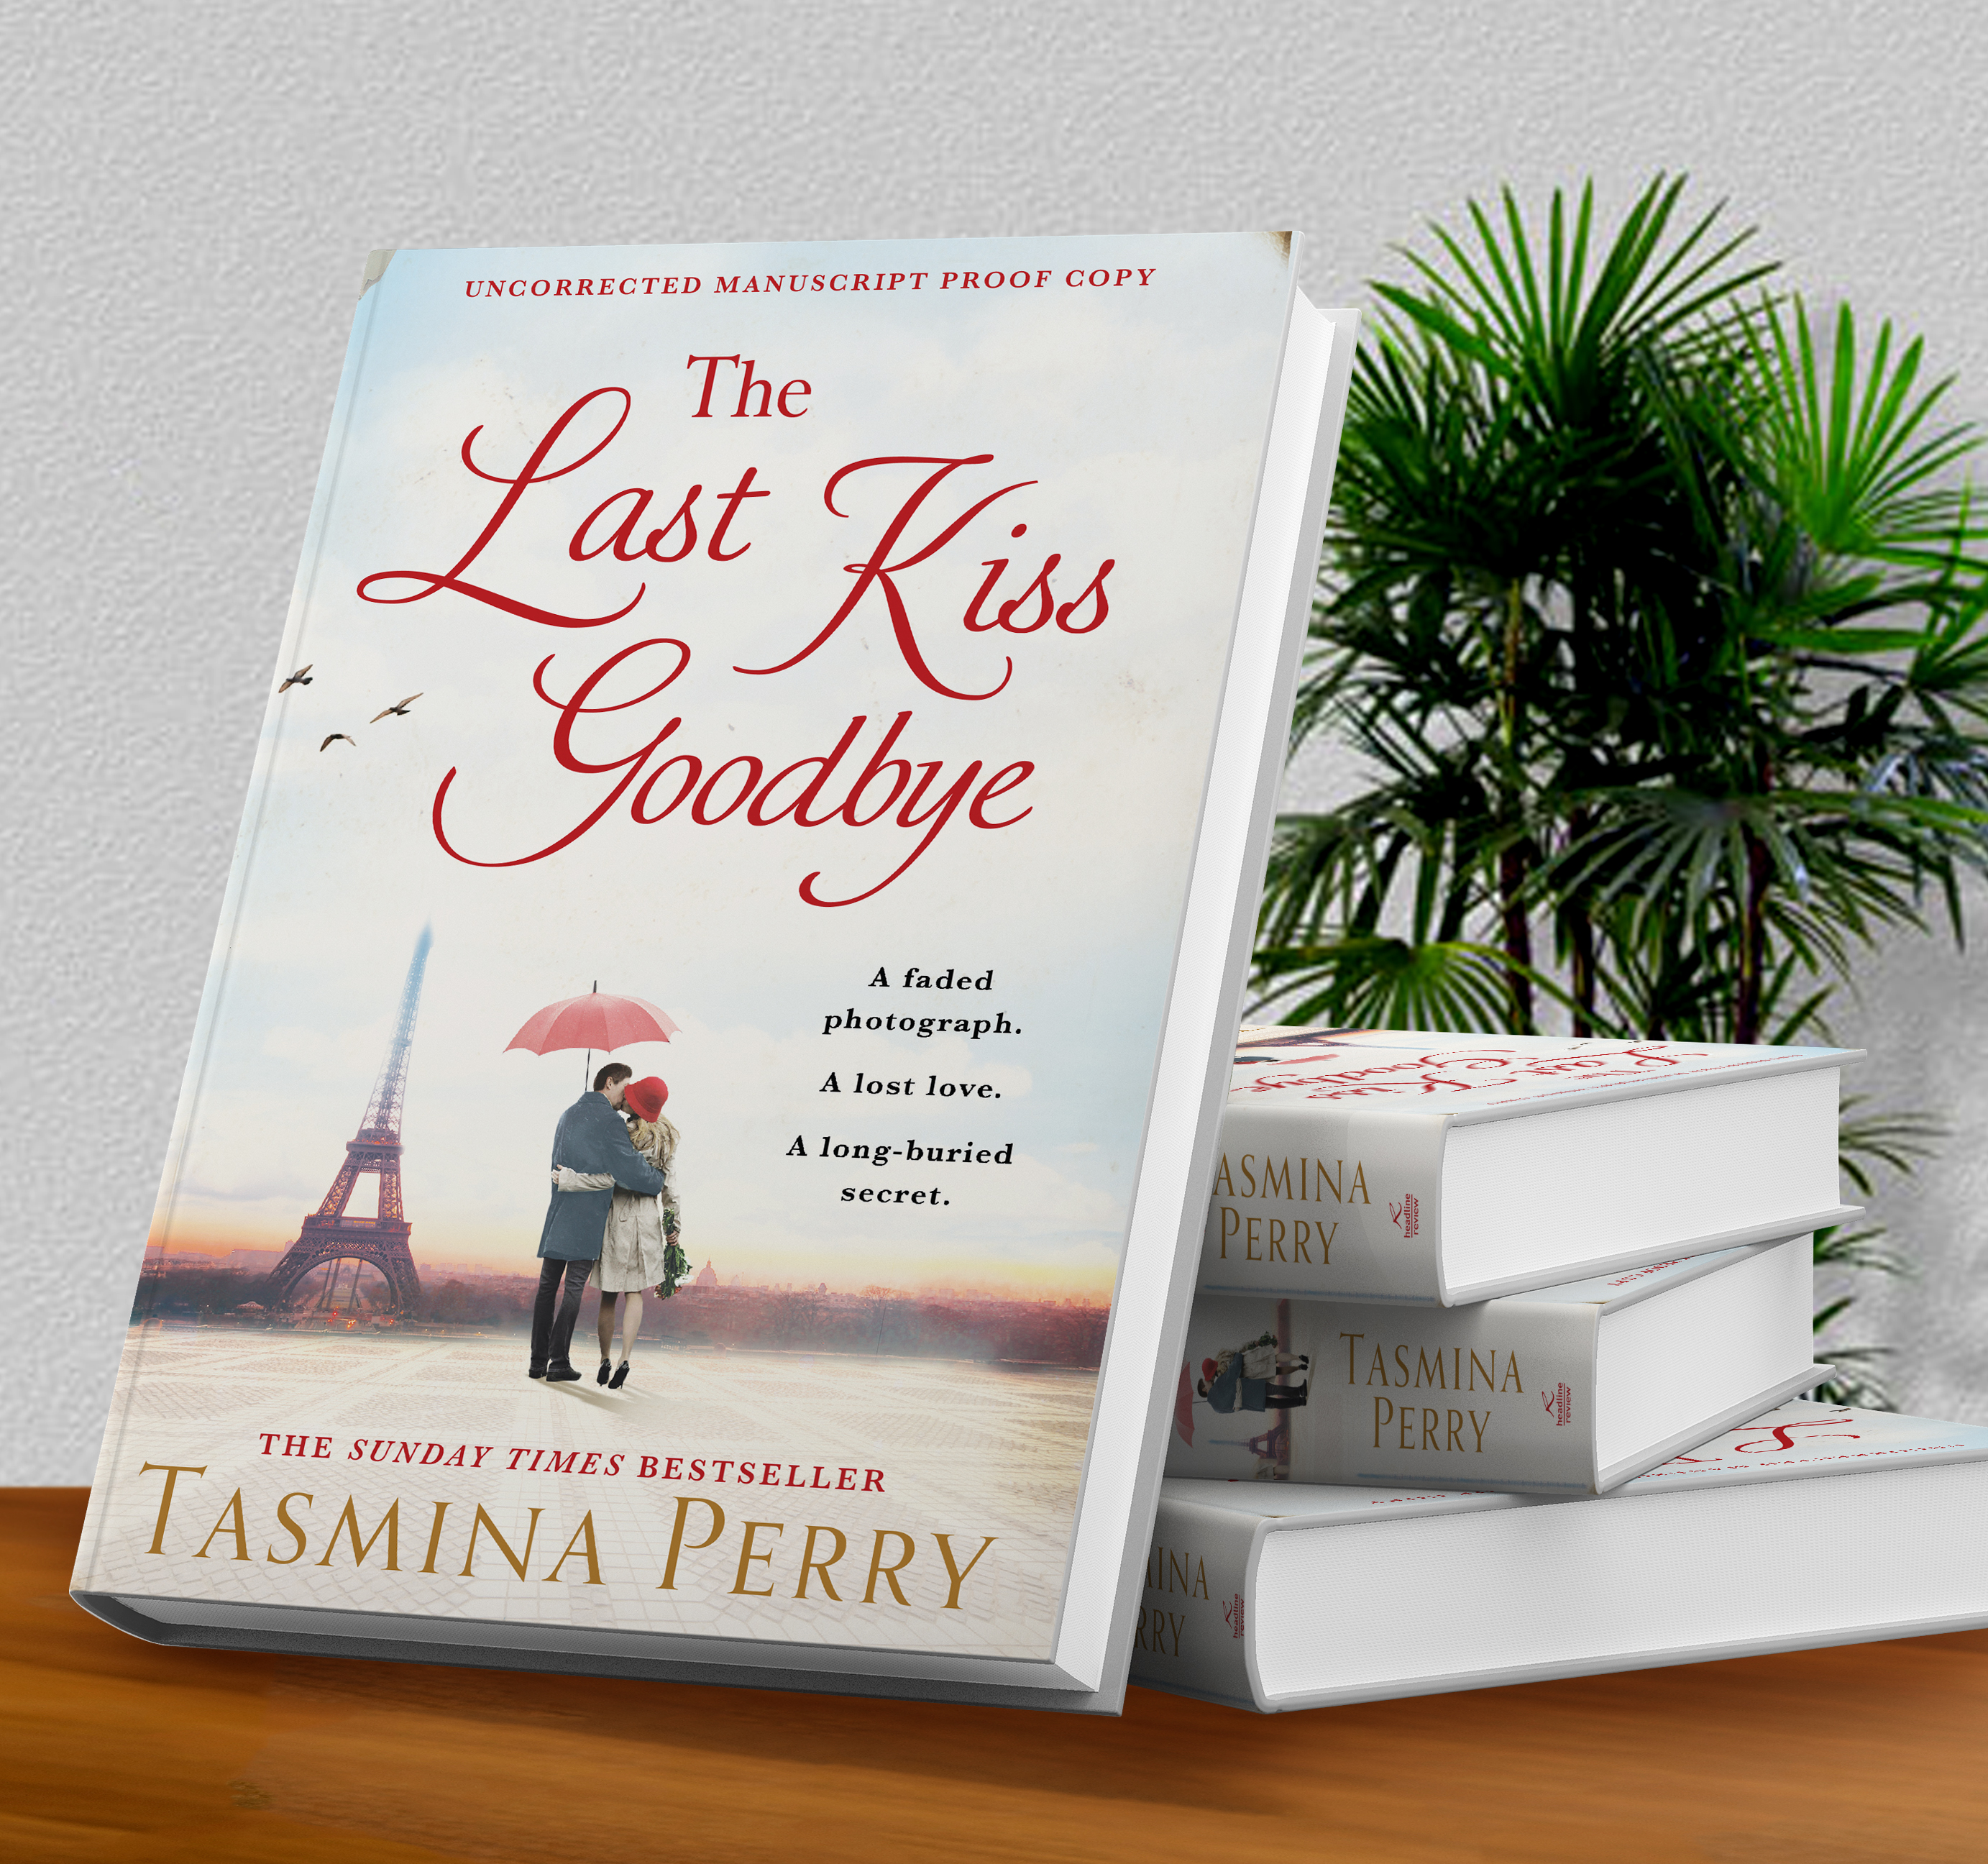 Last Kiss Goodbye proof cover